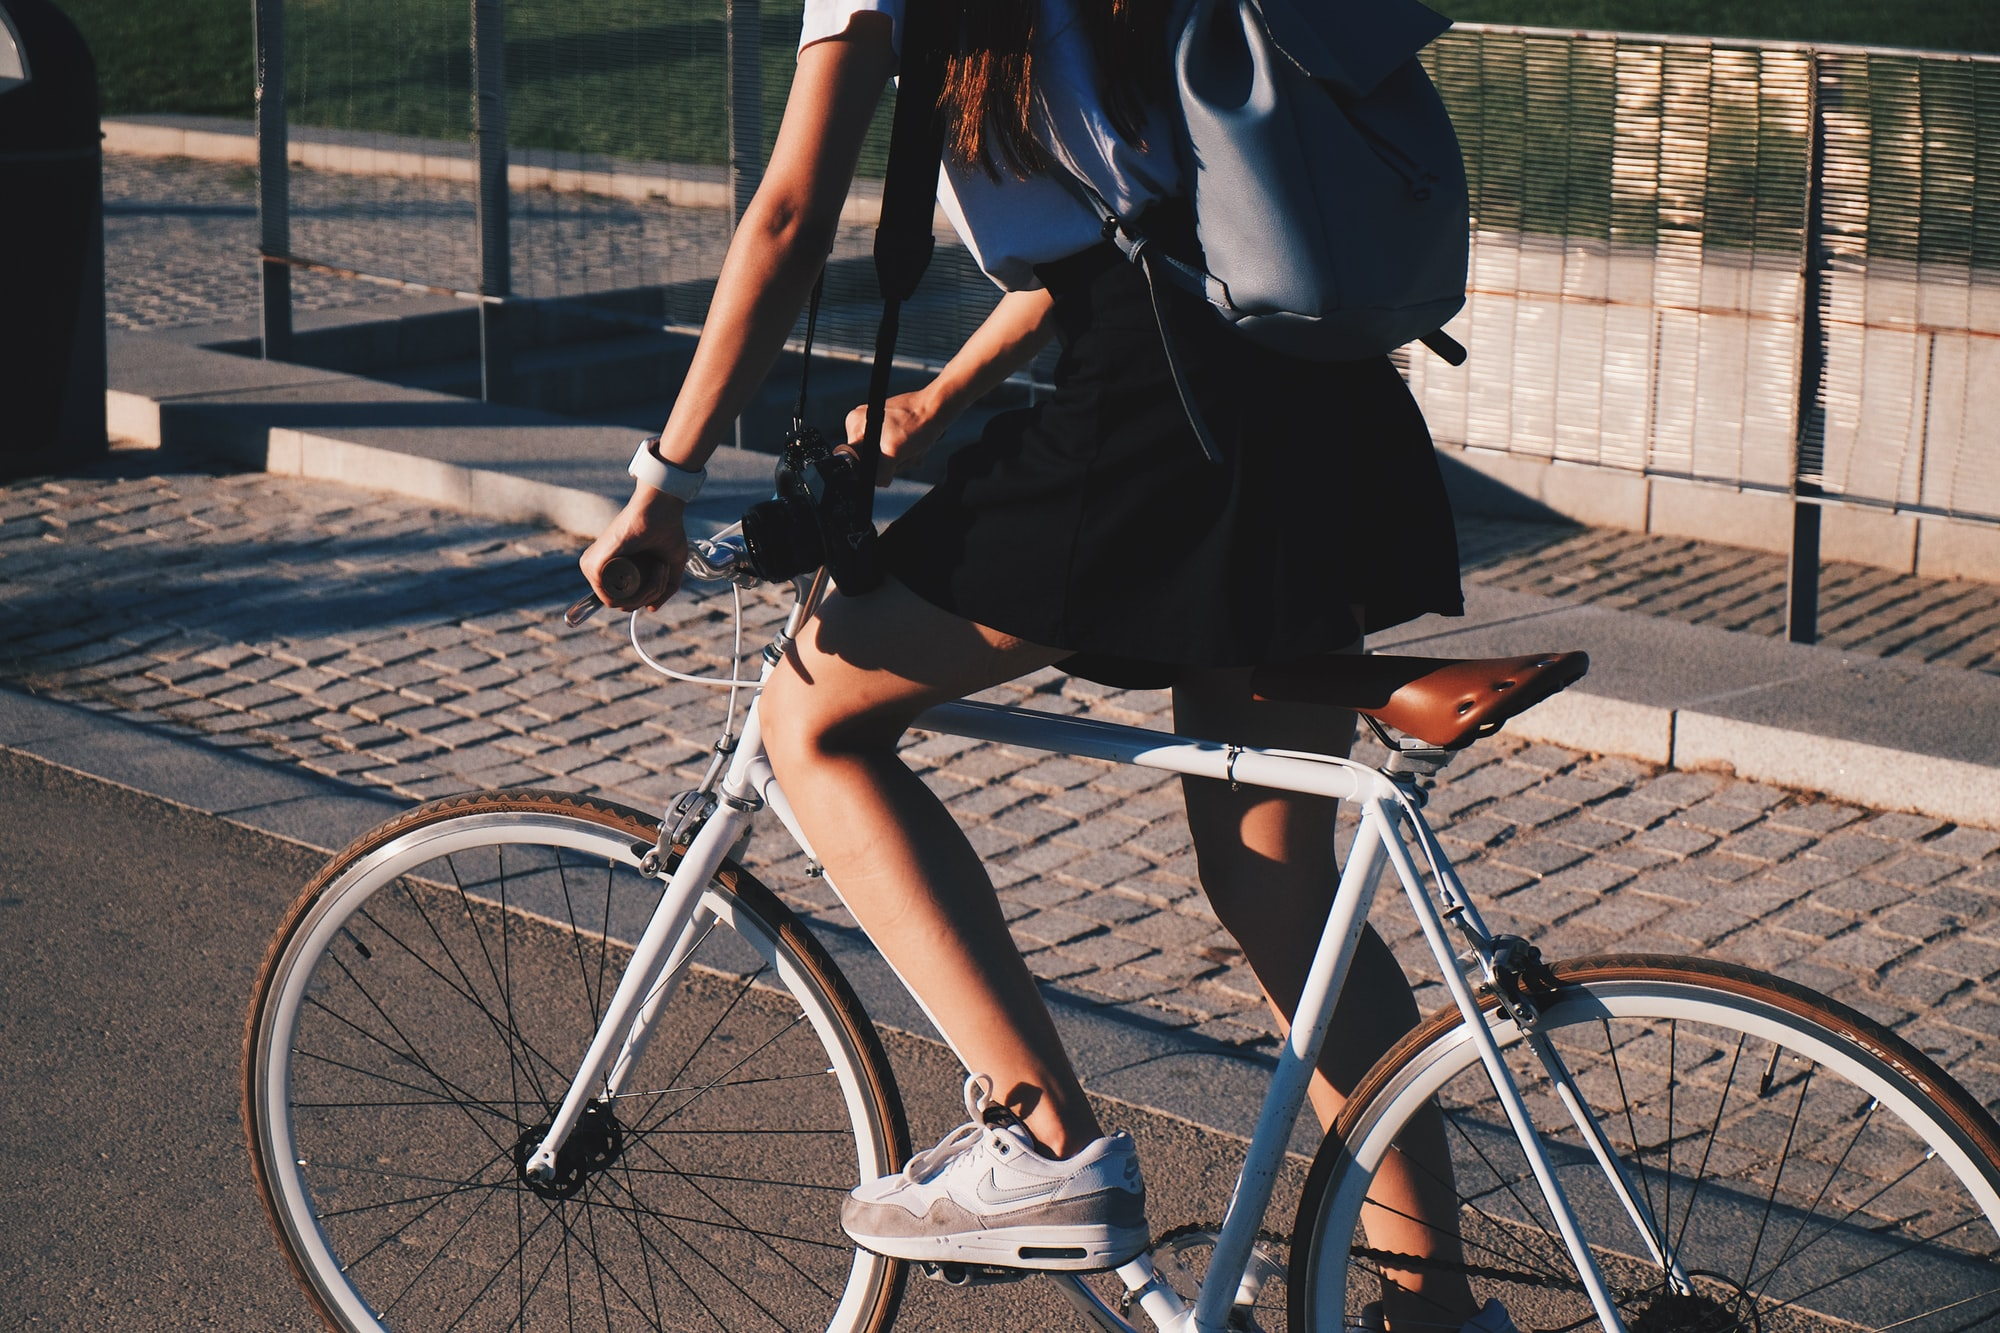 Person pedalling a bicycle